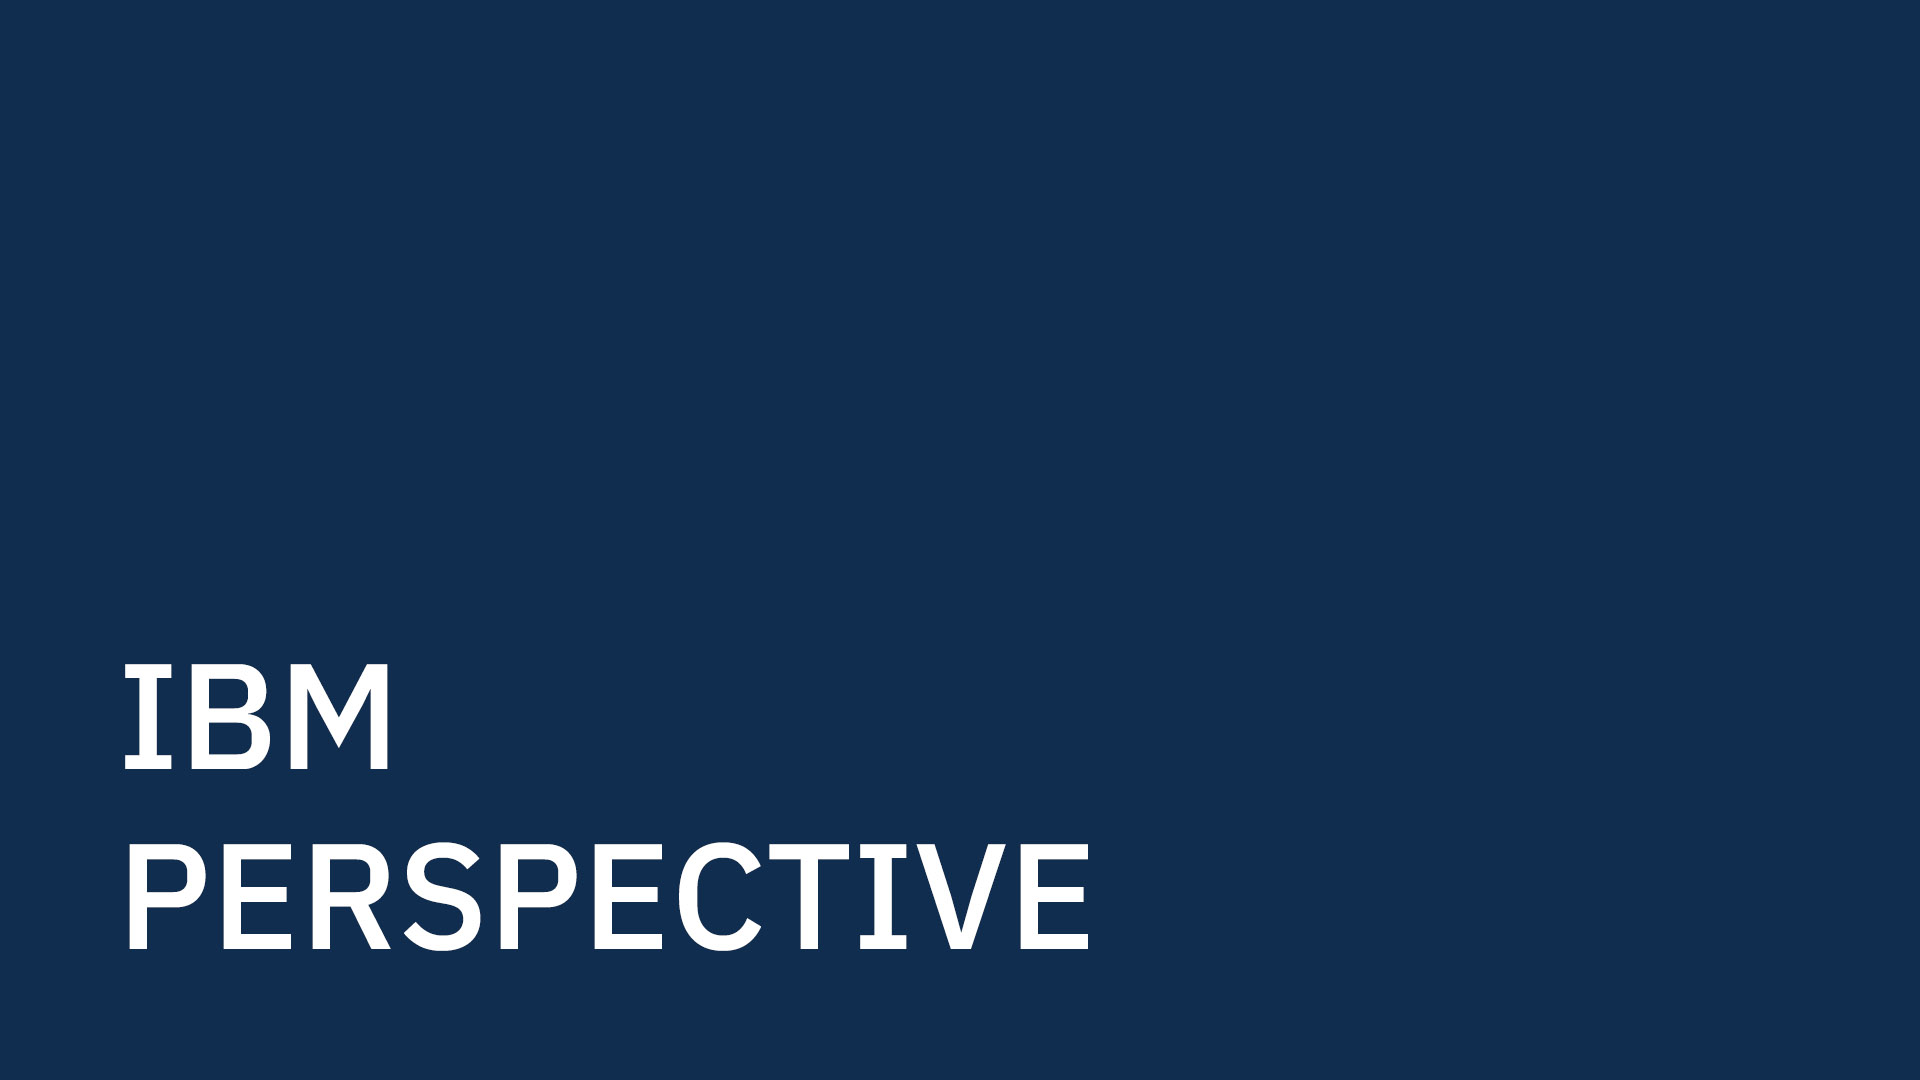 """IBM Perspective"" in white letters against a navy background."